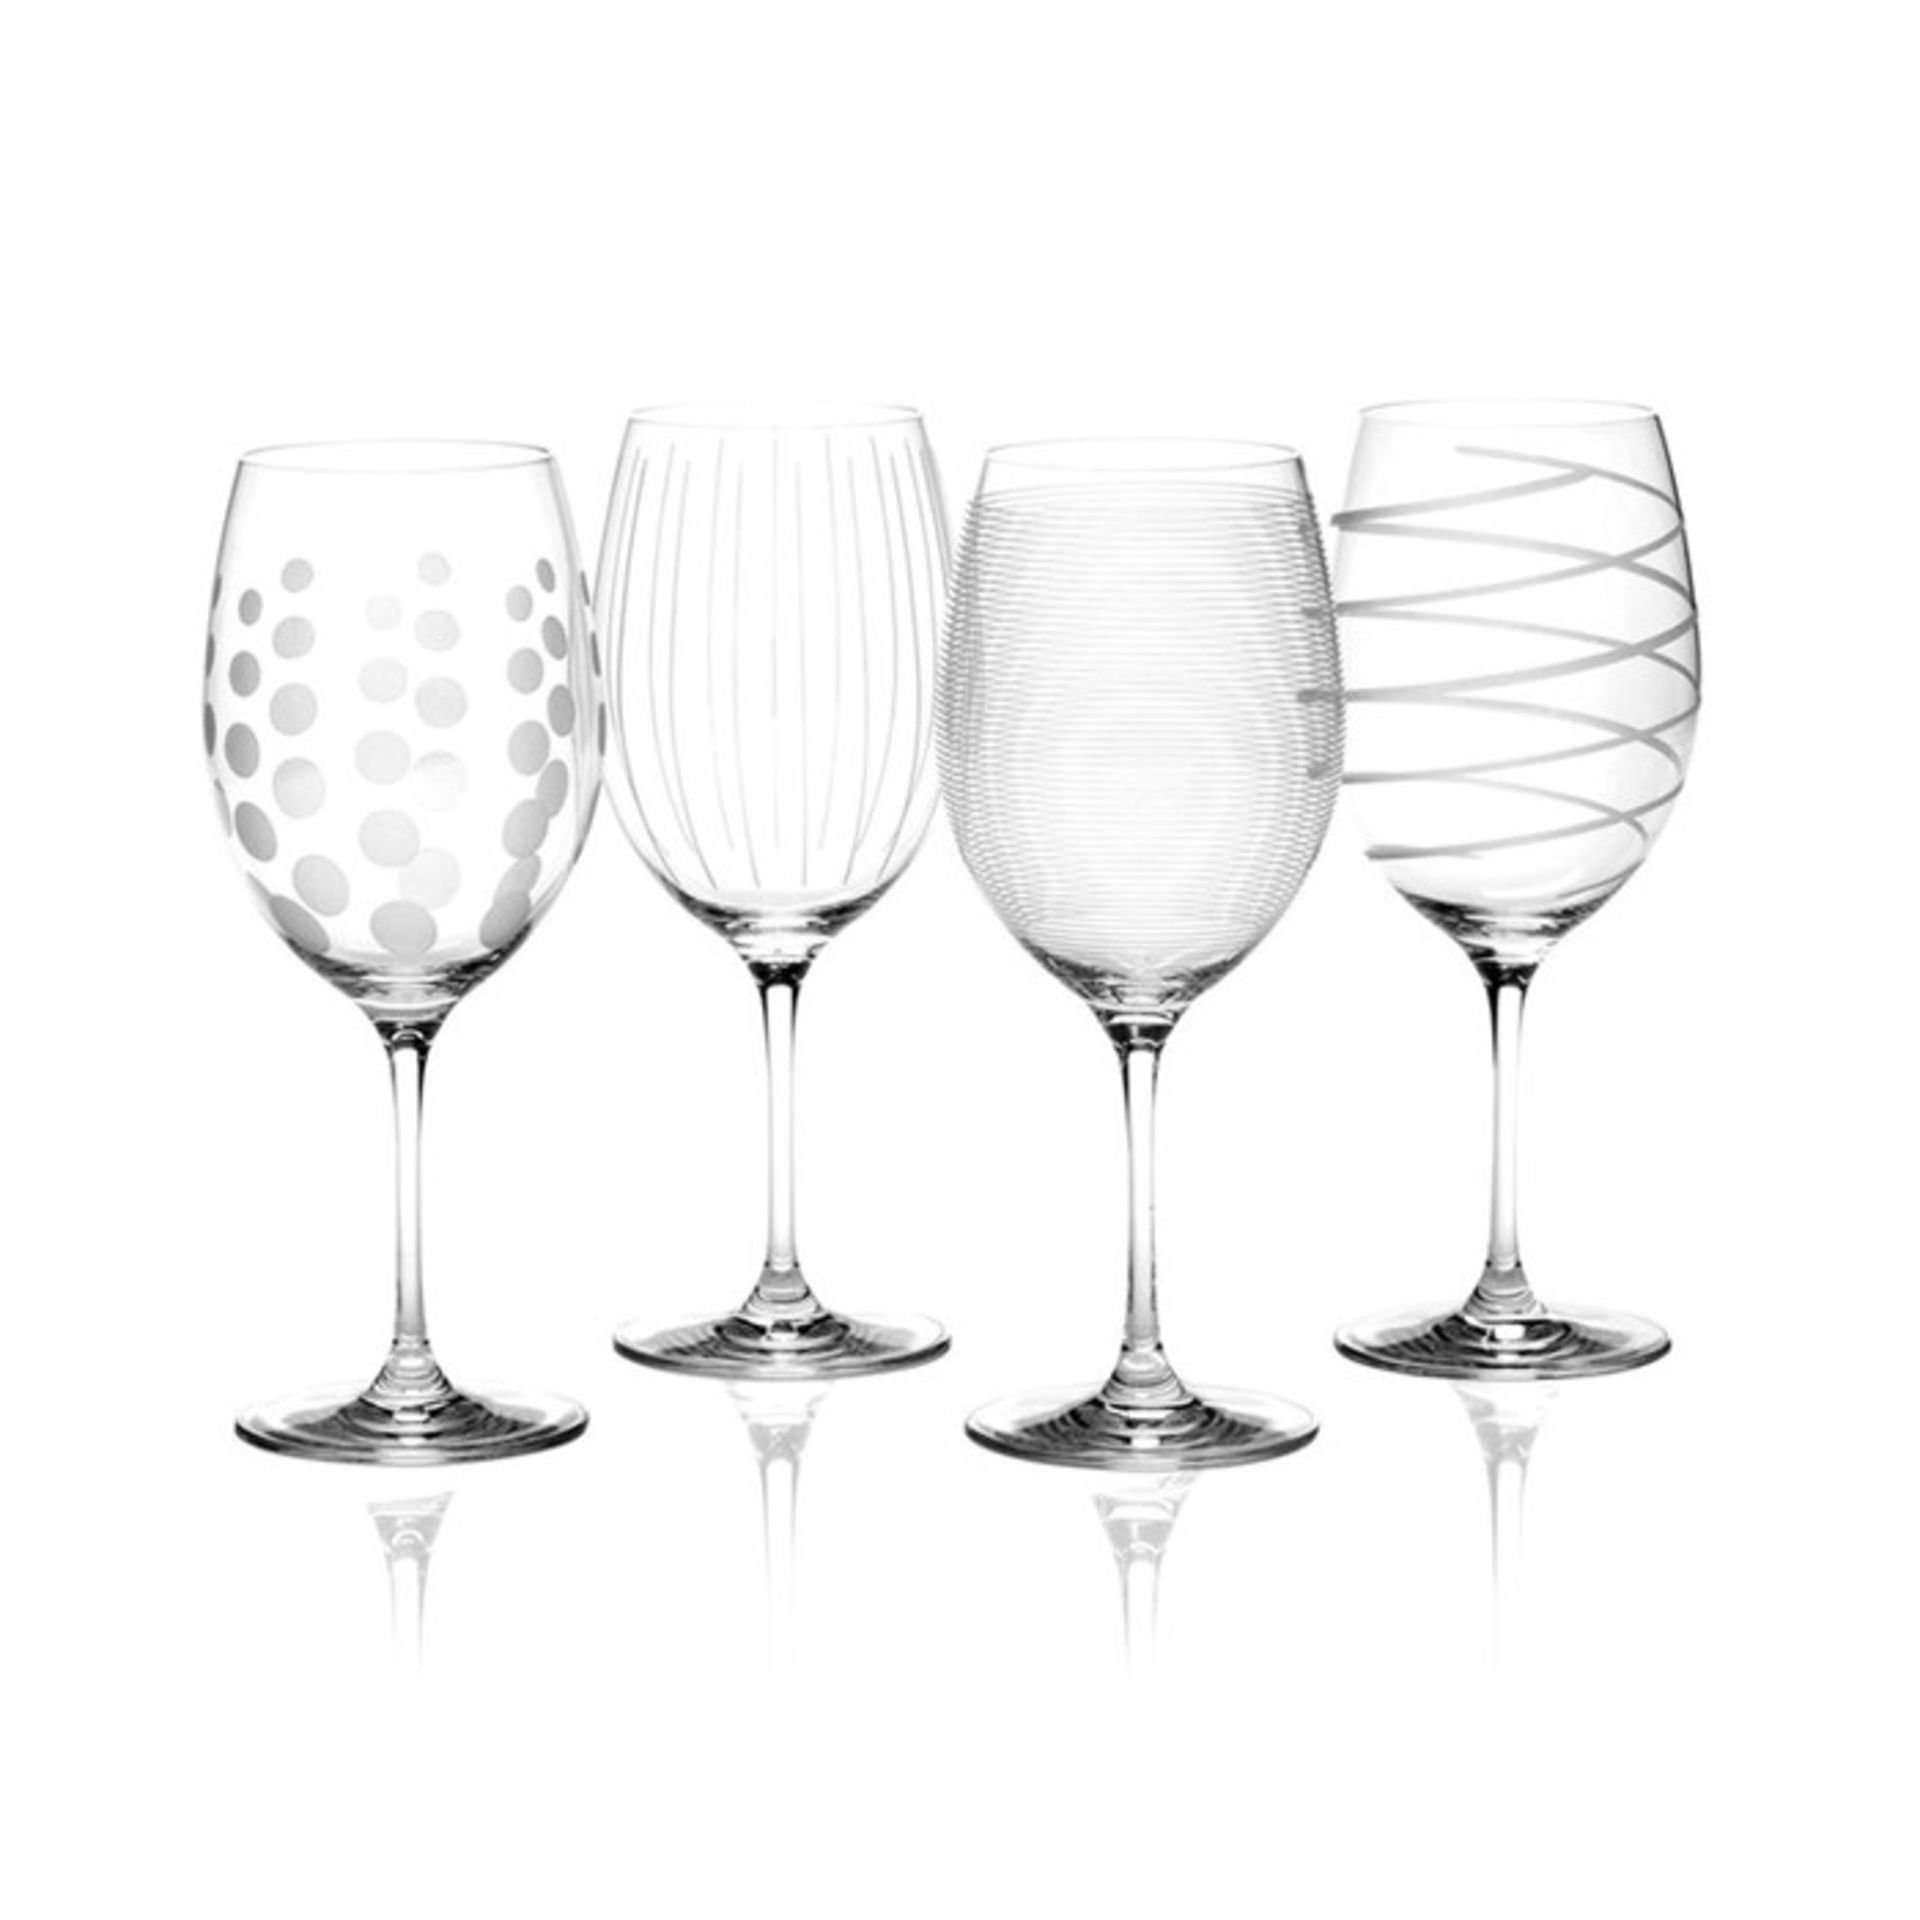 Mikasa, Cheers 4 Piece 685ml Red Wine Glass Set - RRP £24.99 (MBCT1009 - 20863/4) 2D